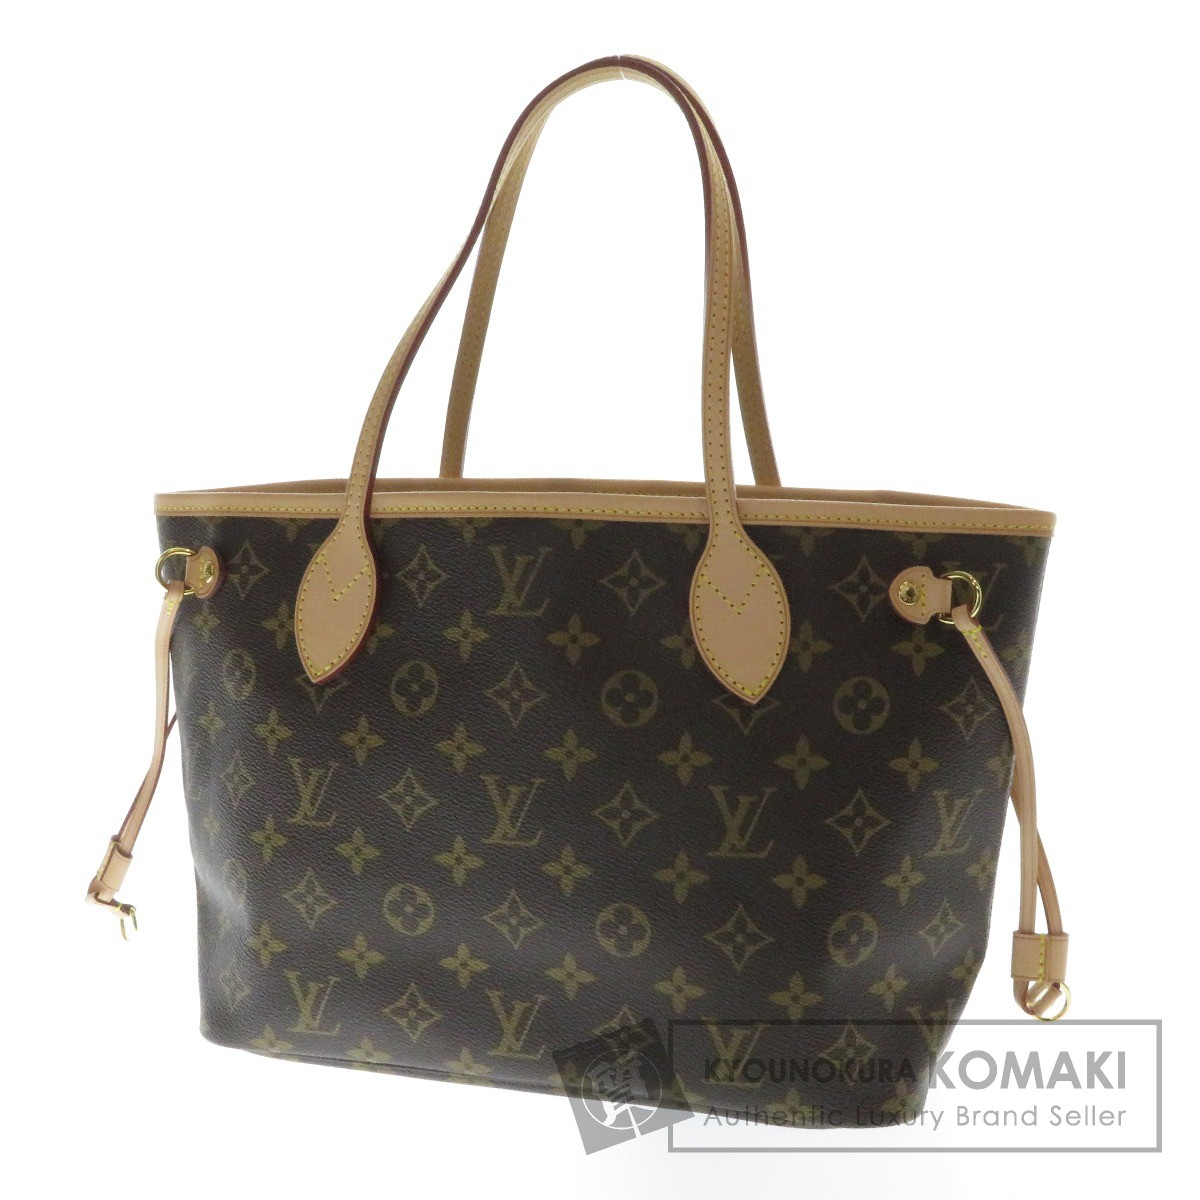 6f2d9cbb529a LOUIS VUITTON  LOUIS VUITTON  Neverfull PM M40155 Tote Bag ...